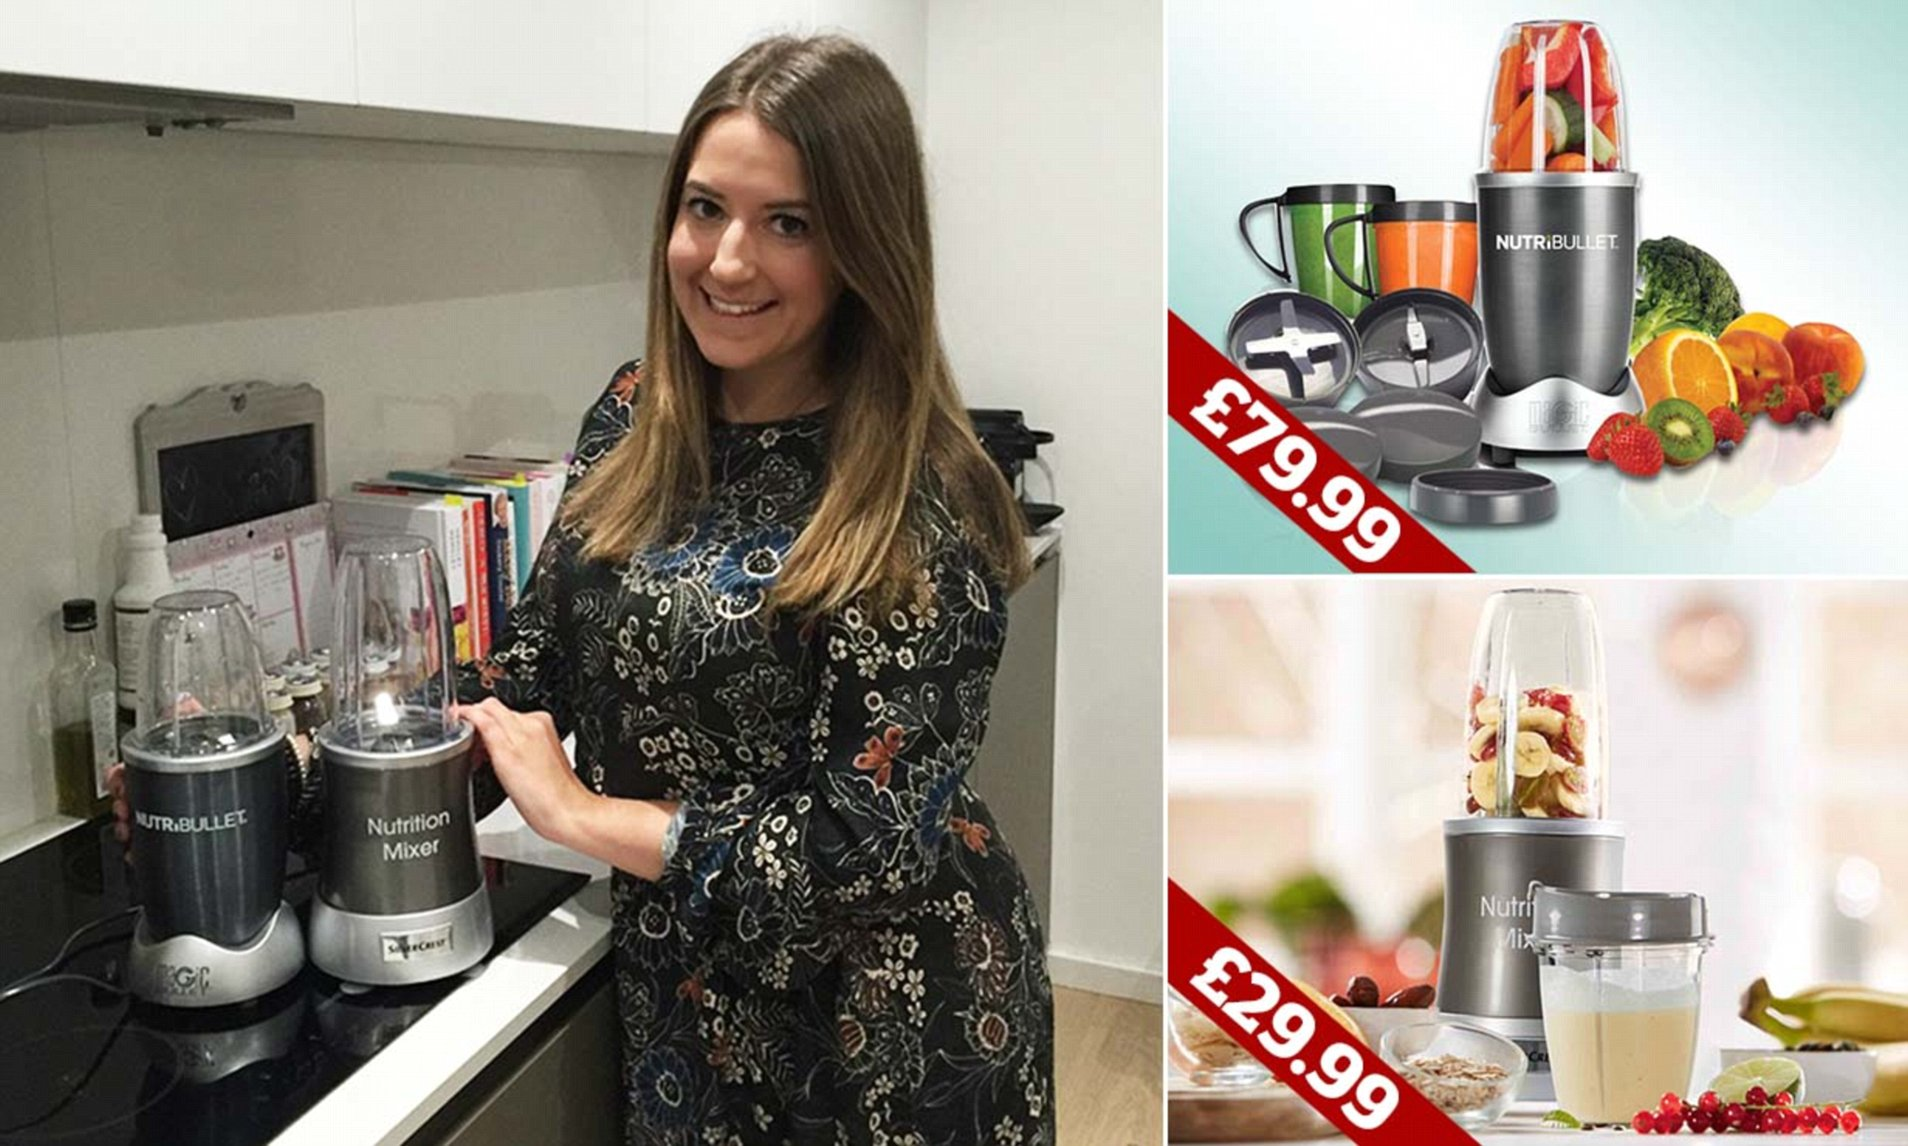 Lidl Silvercrest Nutrition Mixer Review Can Lidl S 29 Version Of The Nutribullet Compete With Its 80 Rival